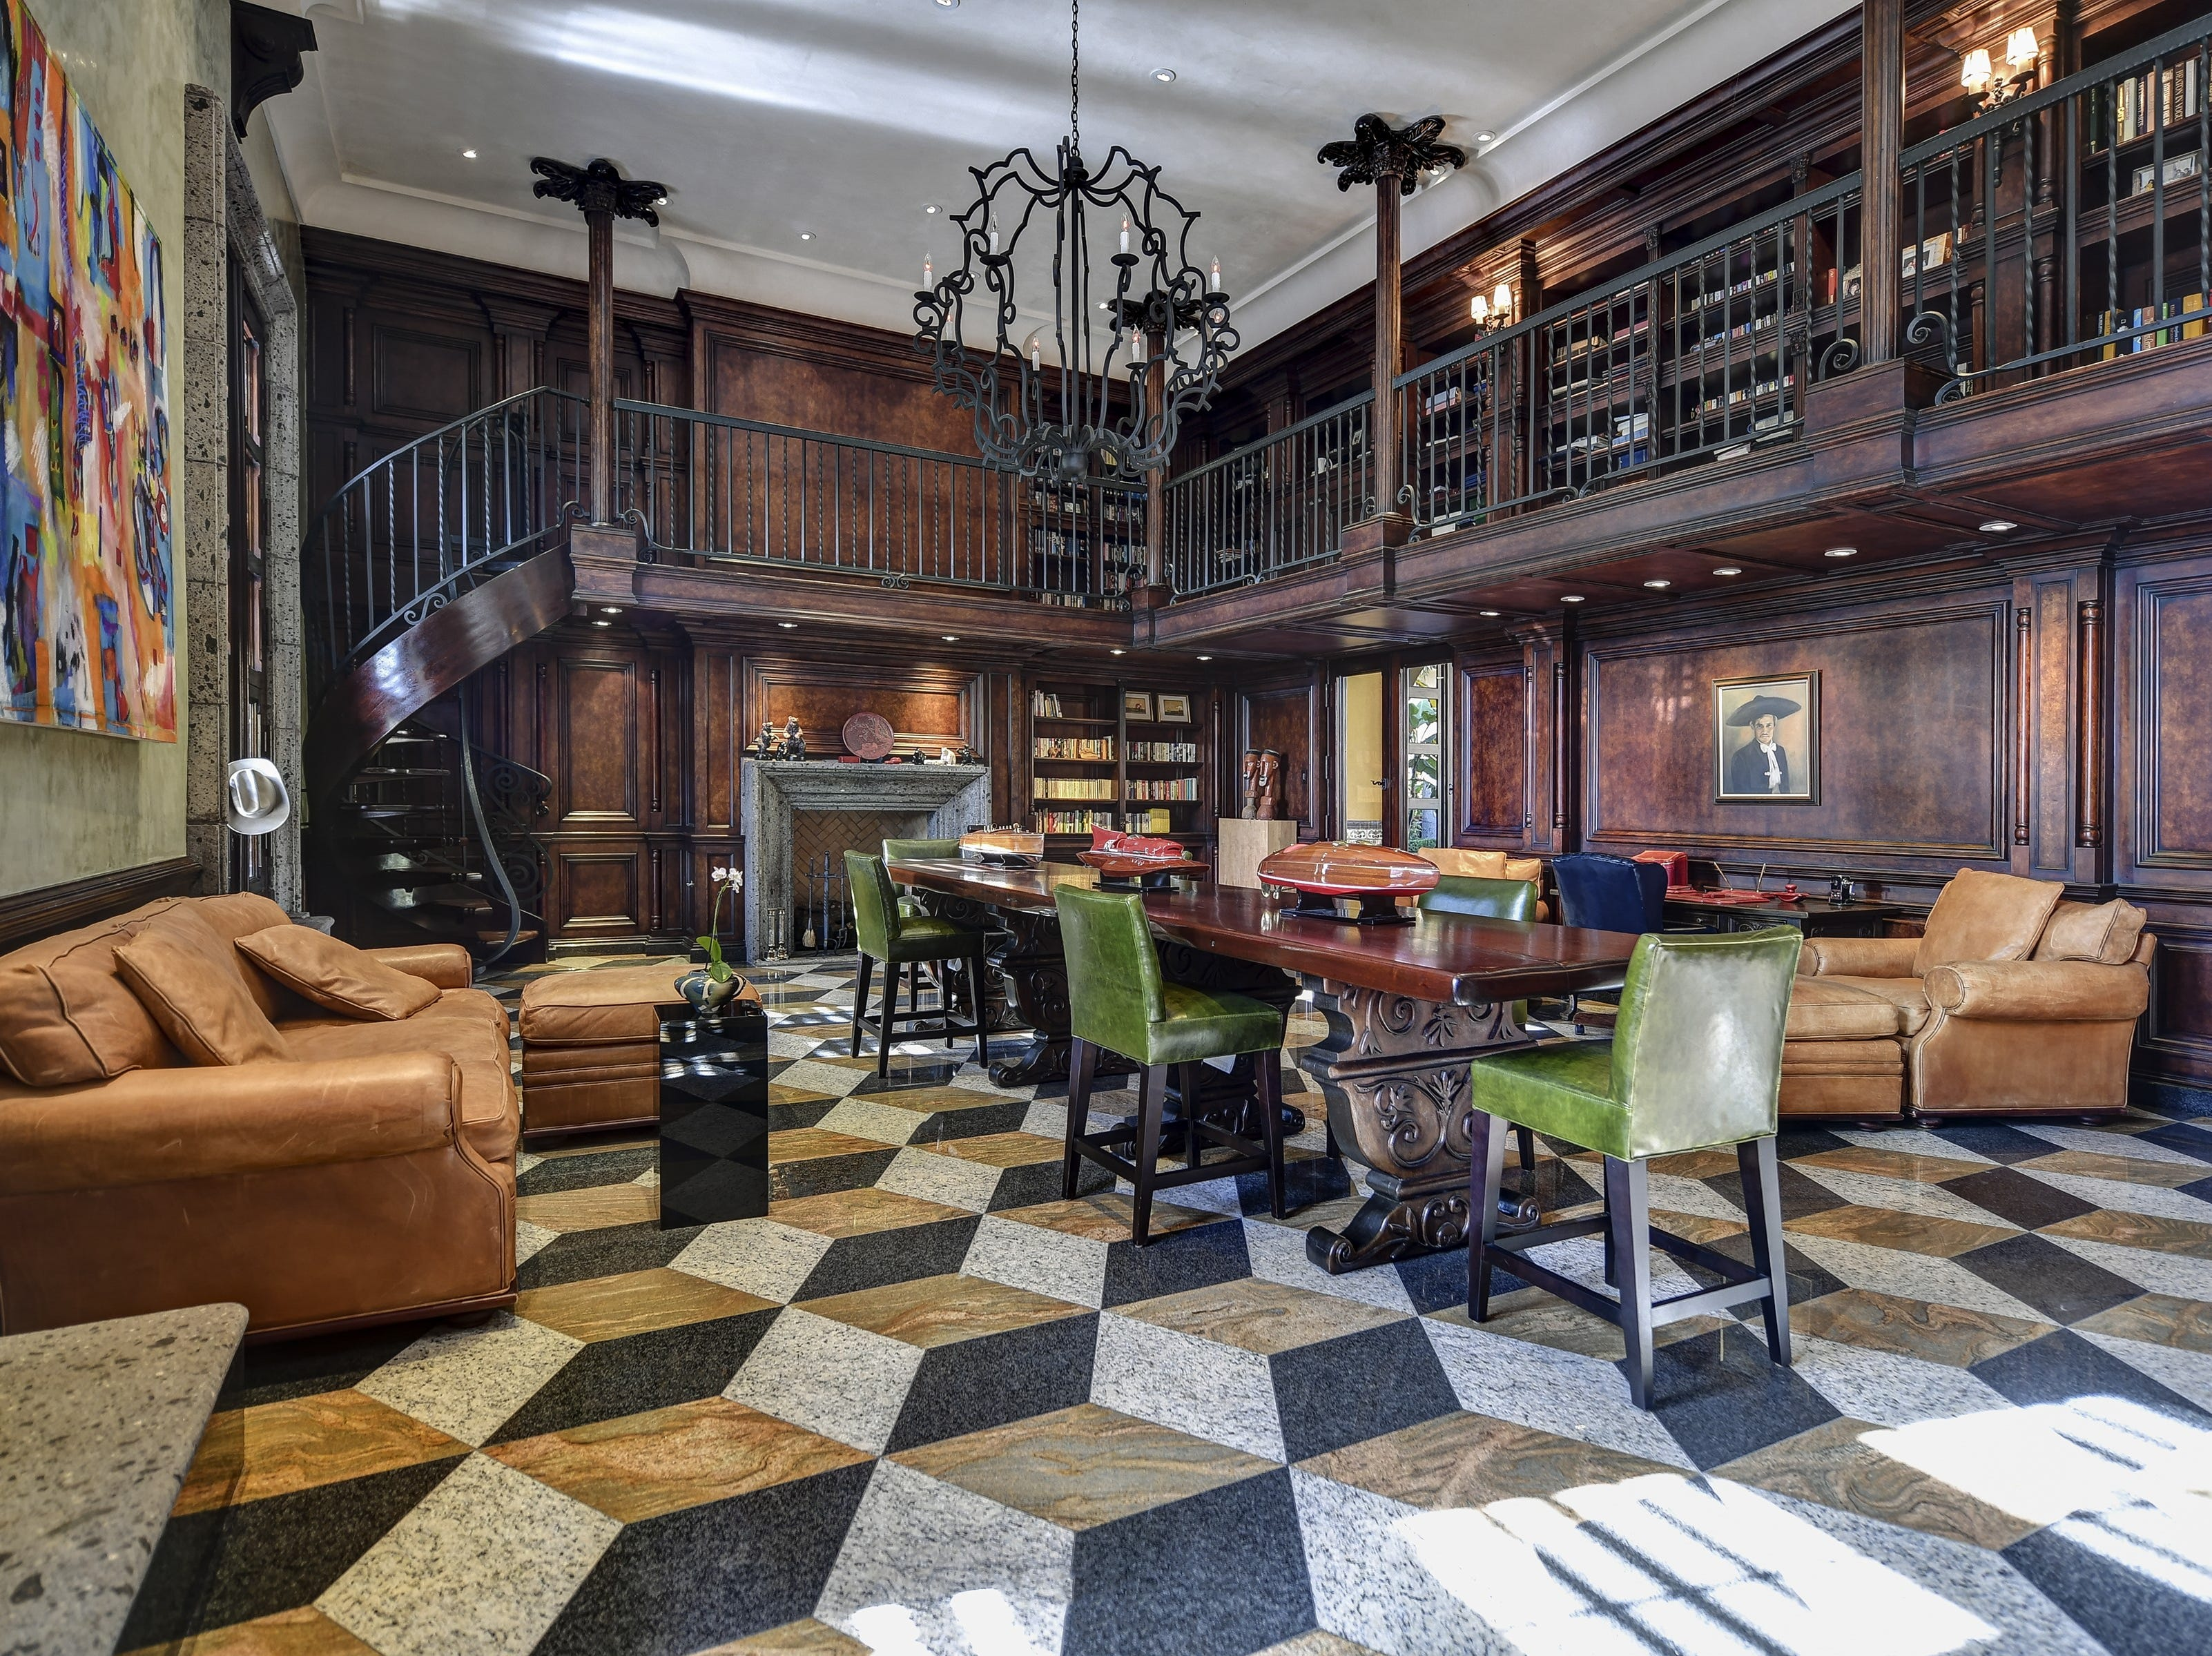 The custom wood-paneled library of the PV mansion, purchased by Amy Connor, features a custom iron spiral staircase that leads to the upper bookcase.